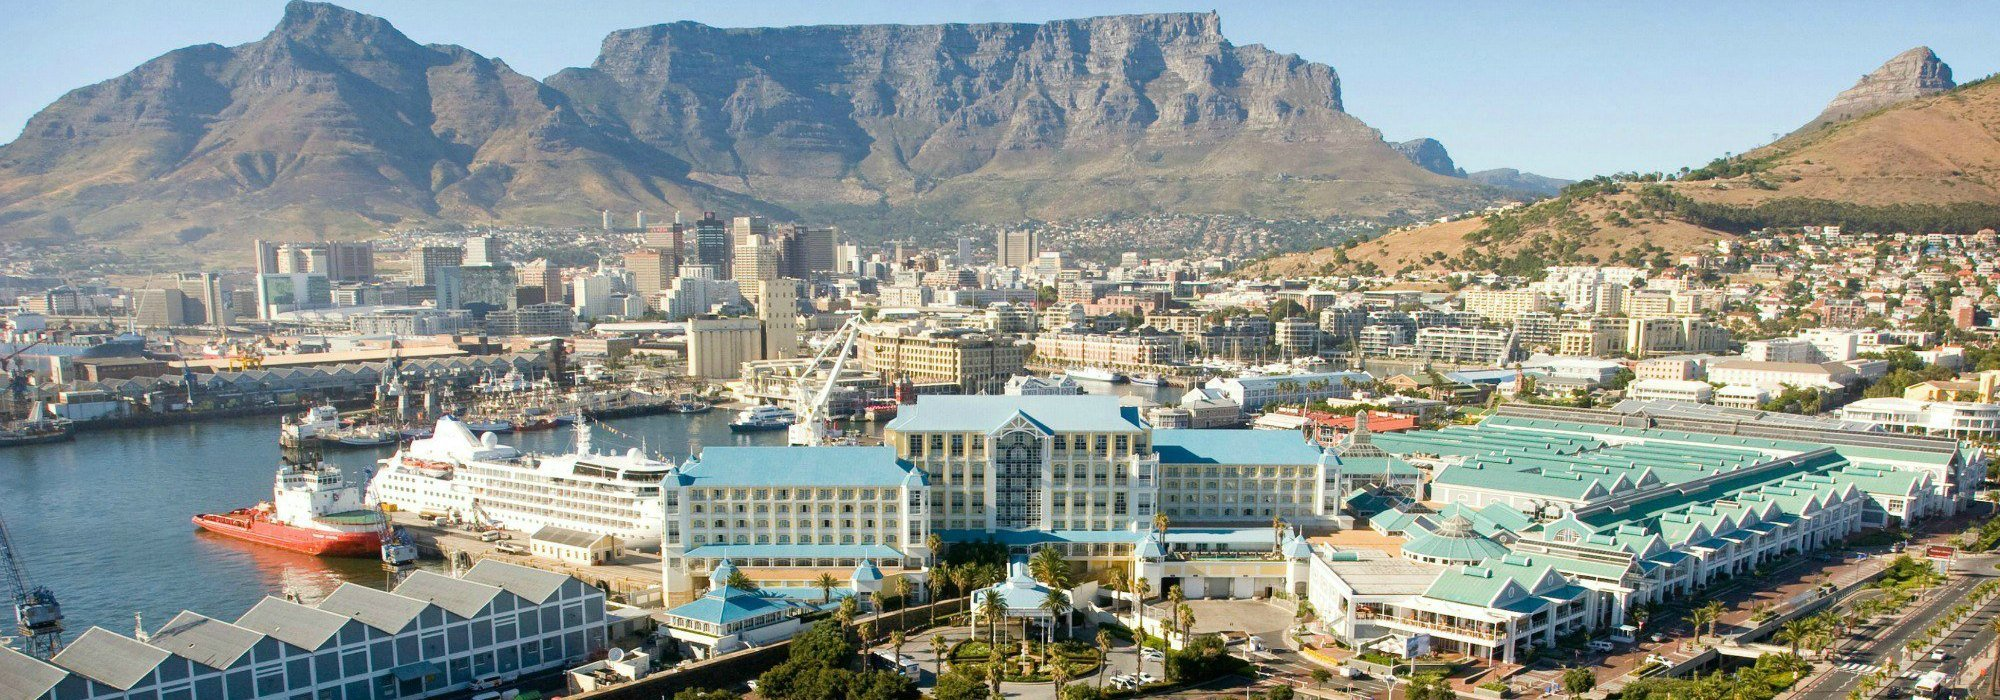 Table Mountain and Table Bay hotel